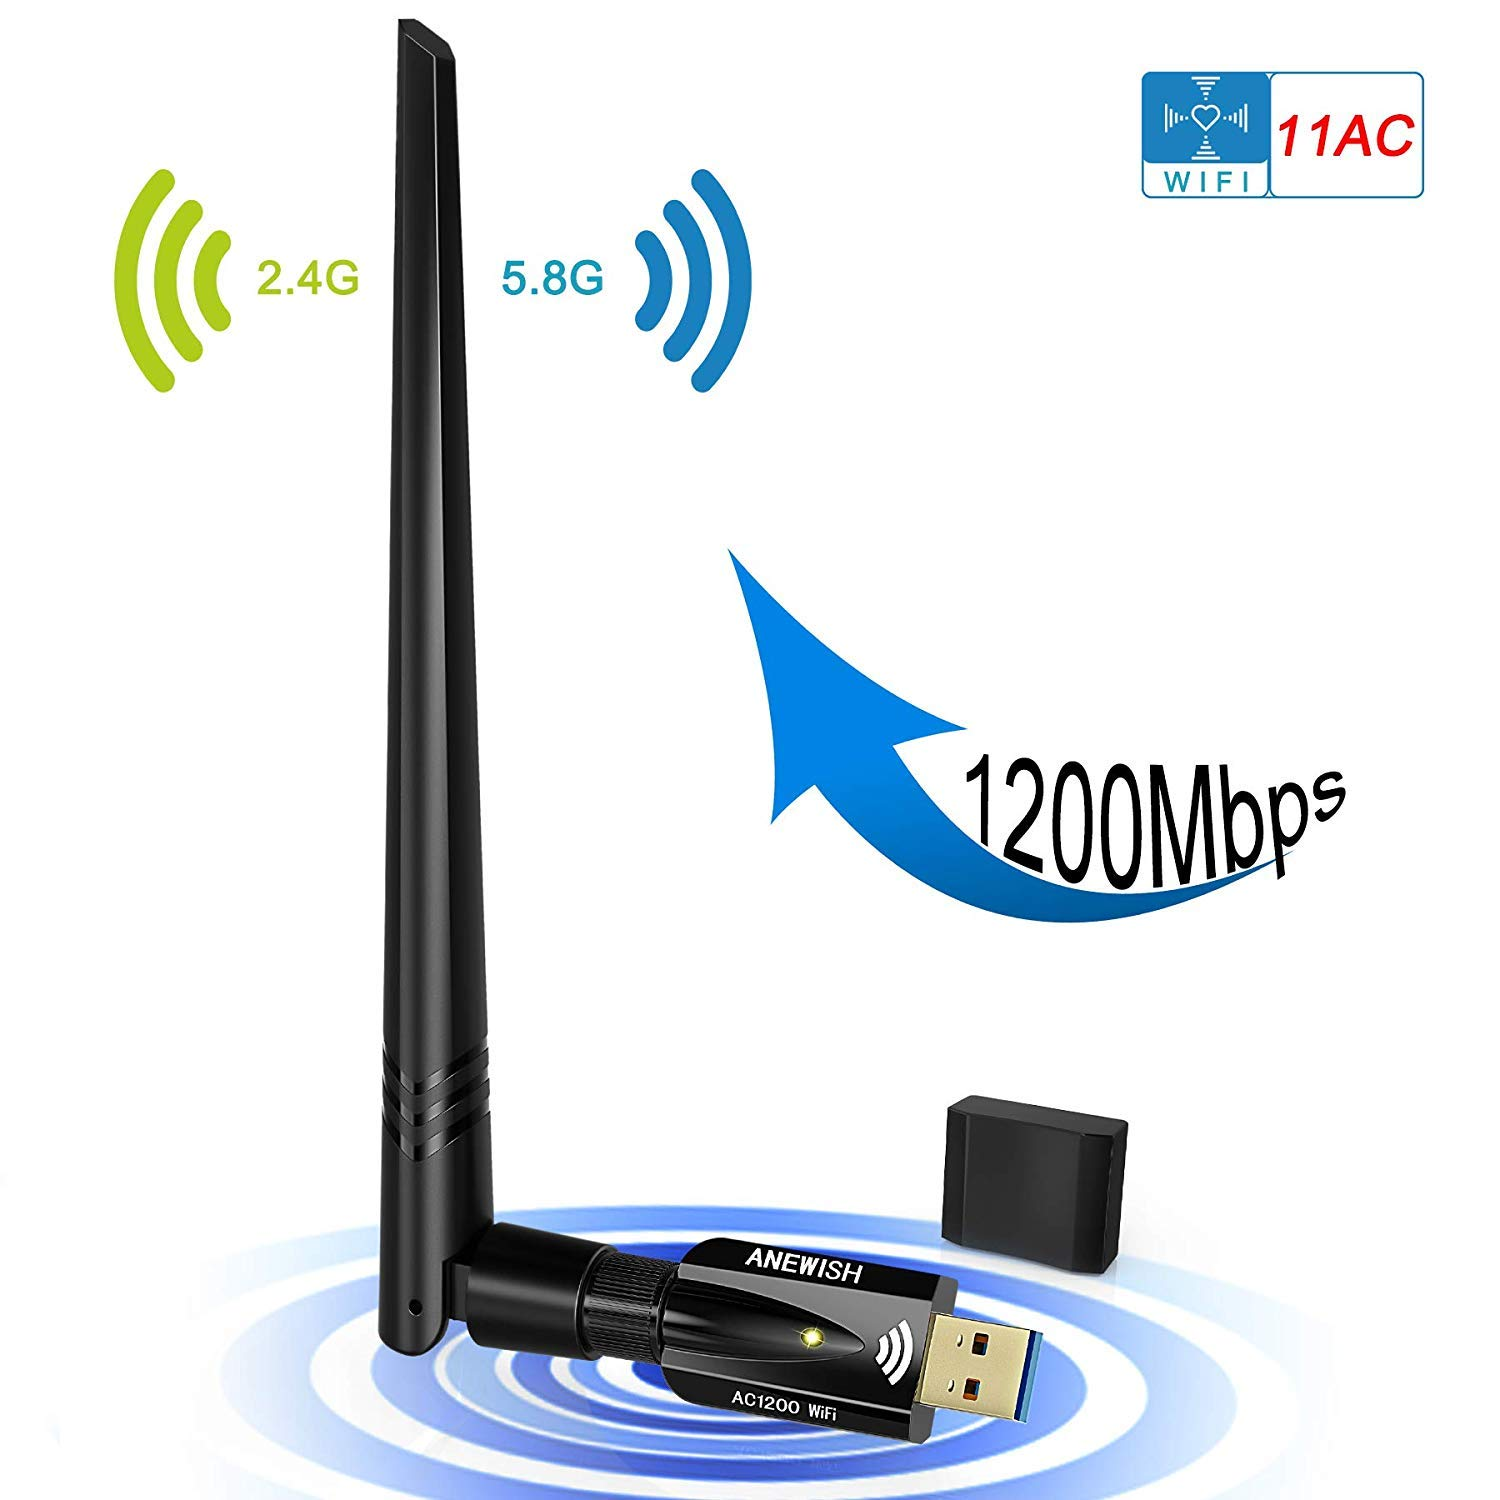 USB WiFi Adapter 1200Mbps, ANEWISH Wireless Adapter USB3.0 Dual Band 11ac(2.4GHz/300Mbps 5GHz/867Mbps) Network LAN Card Dongle for PC Desktop Laptop, Supports Windows, Mac and Linux by AE WISH ANEWISH